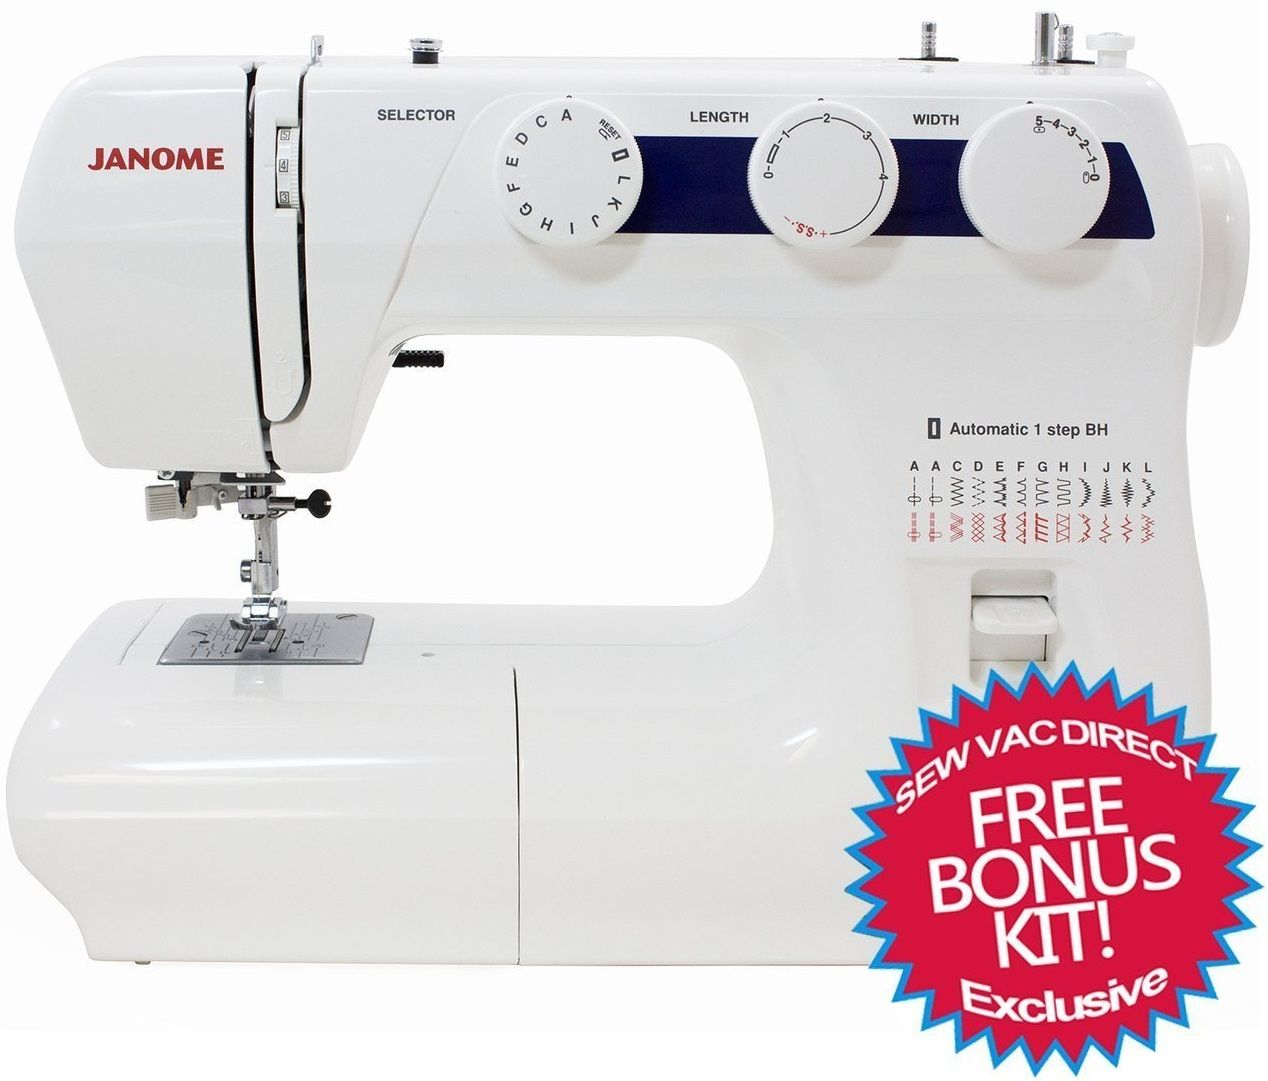 Janome 2222 Sewing Machine Review – Should You Buy One ...